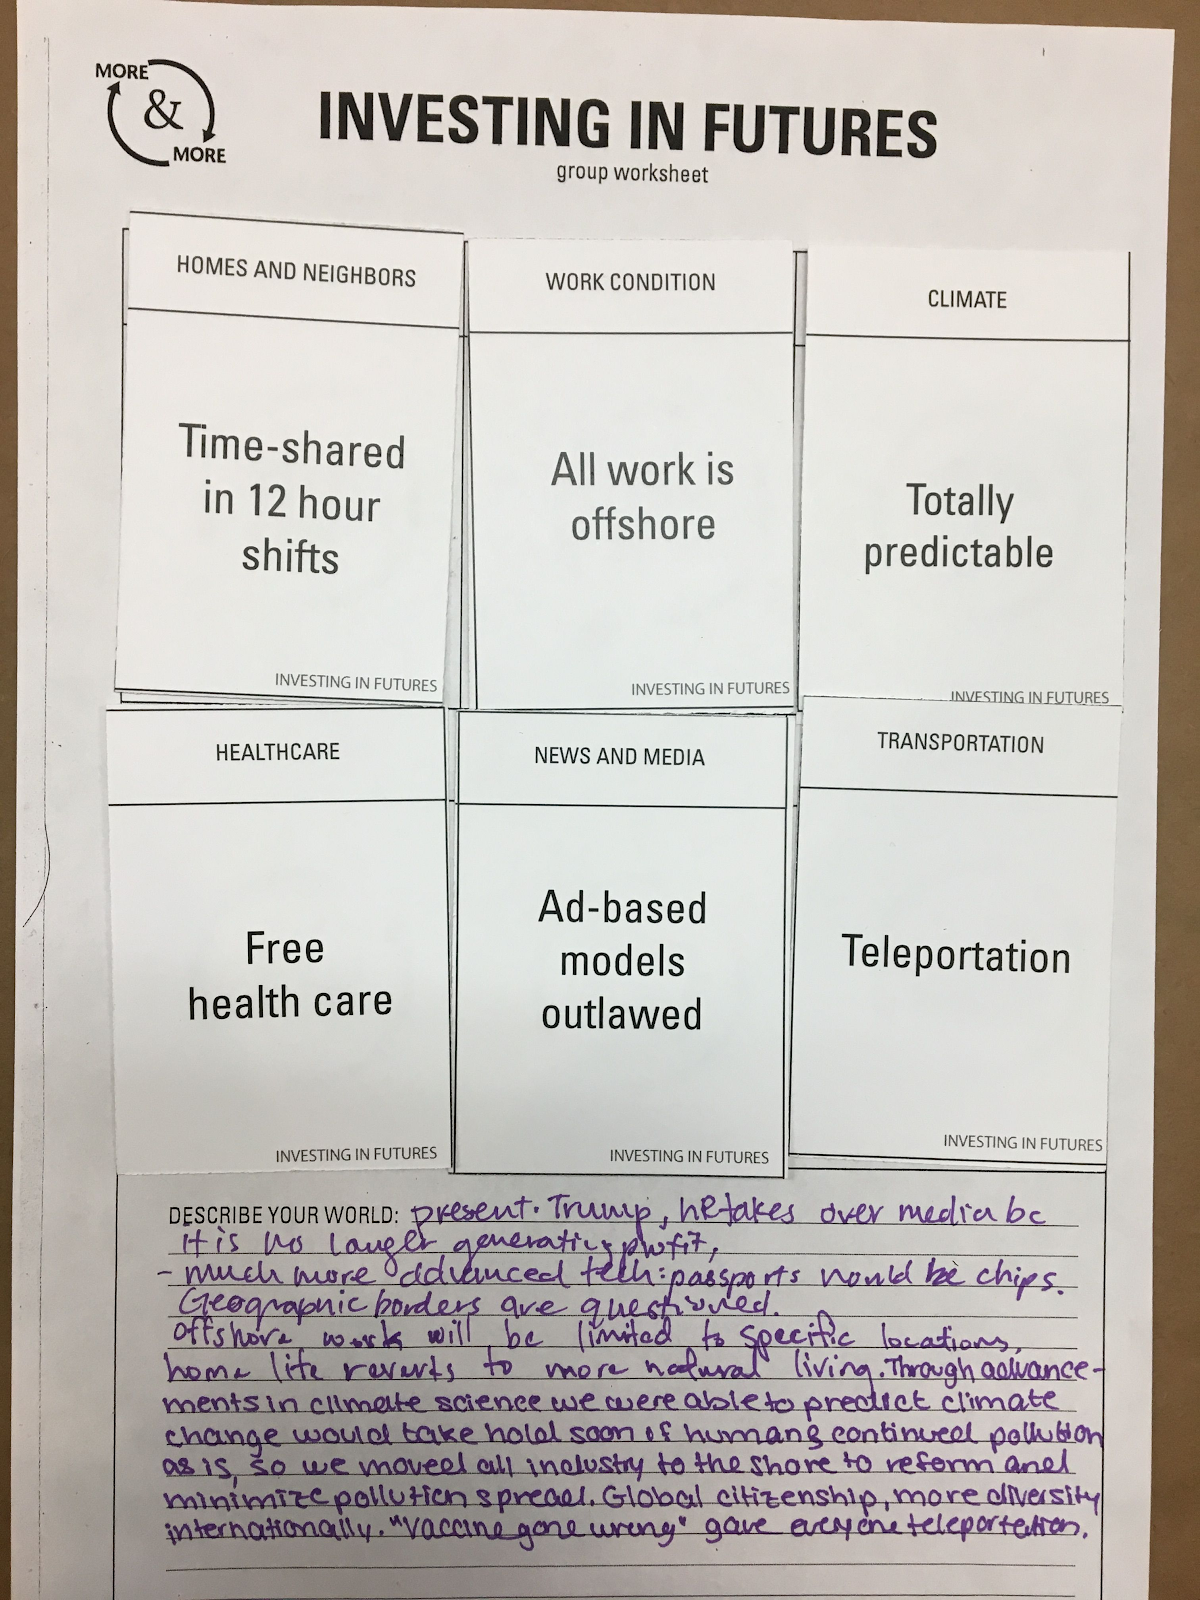 A worksheet with card constraints and handwritten description of a world.